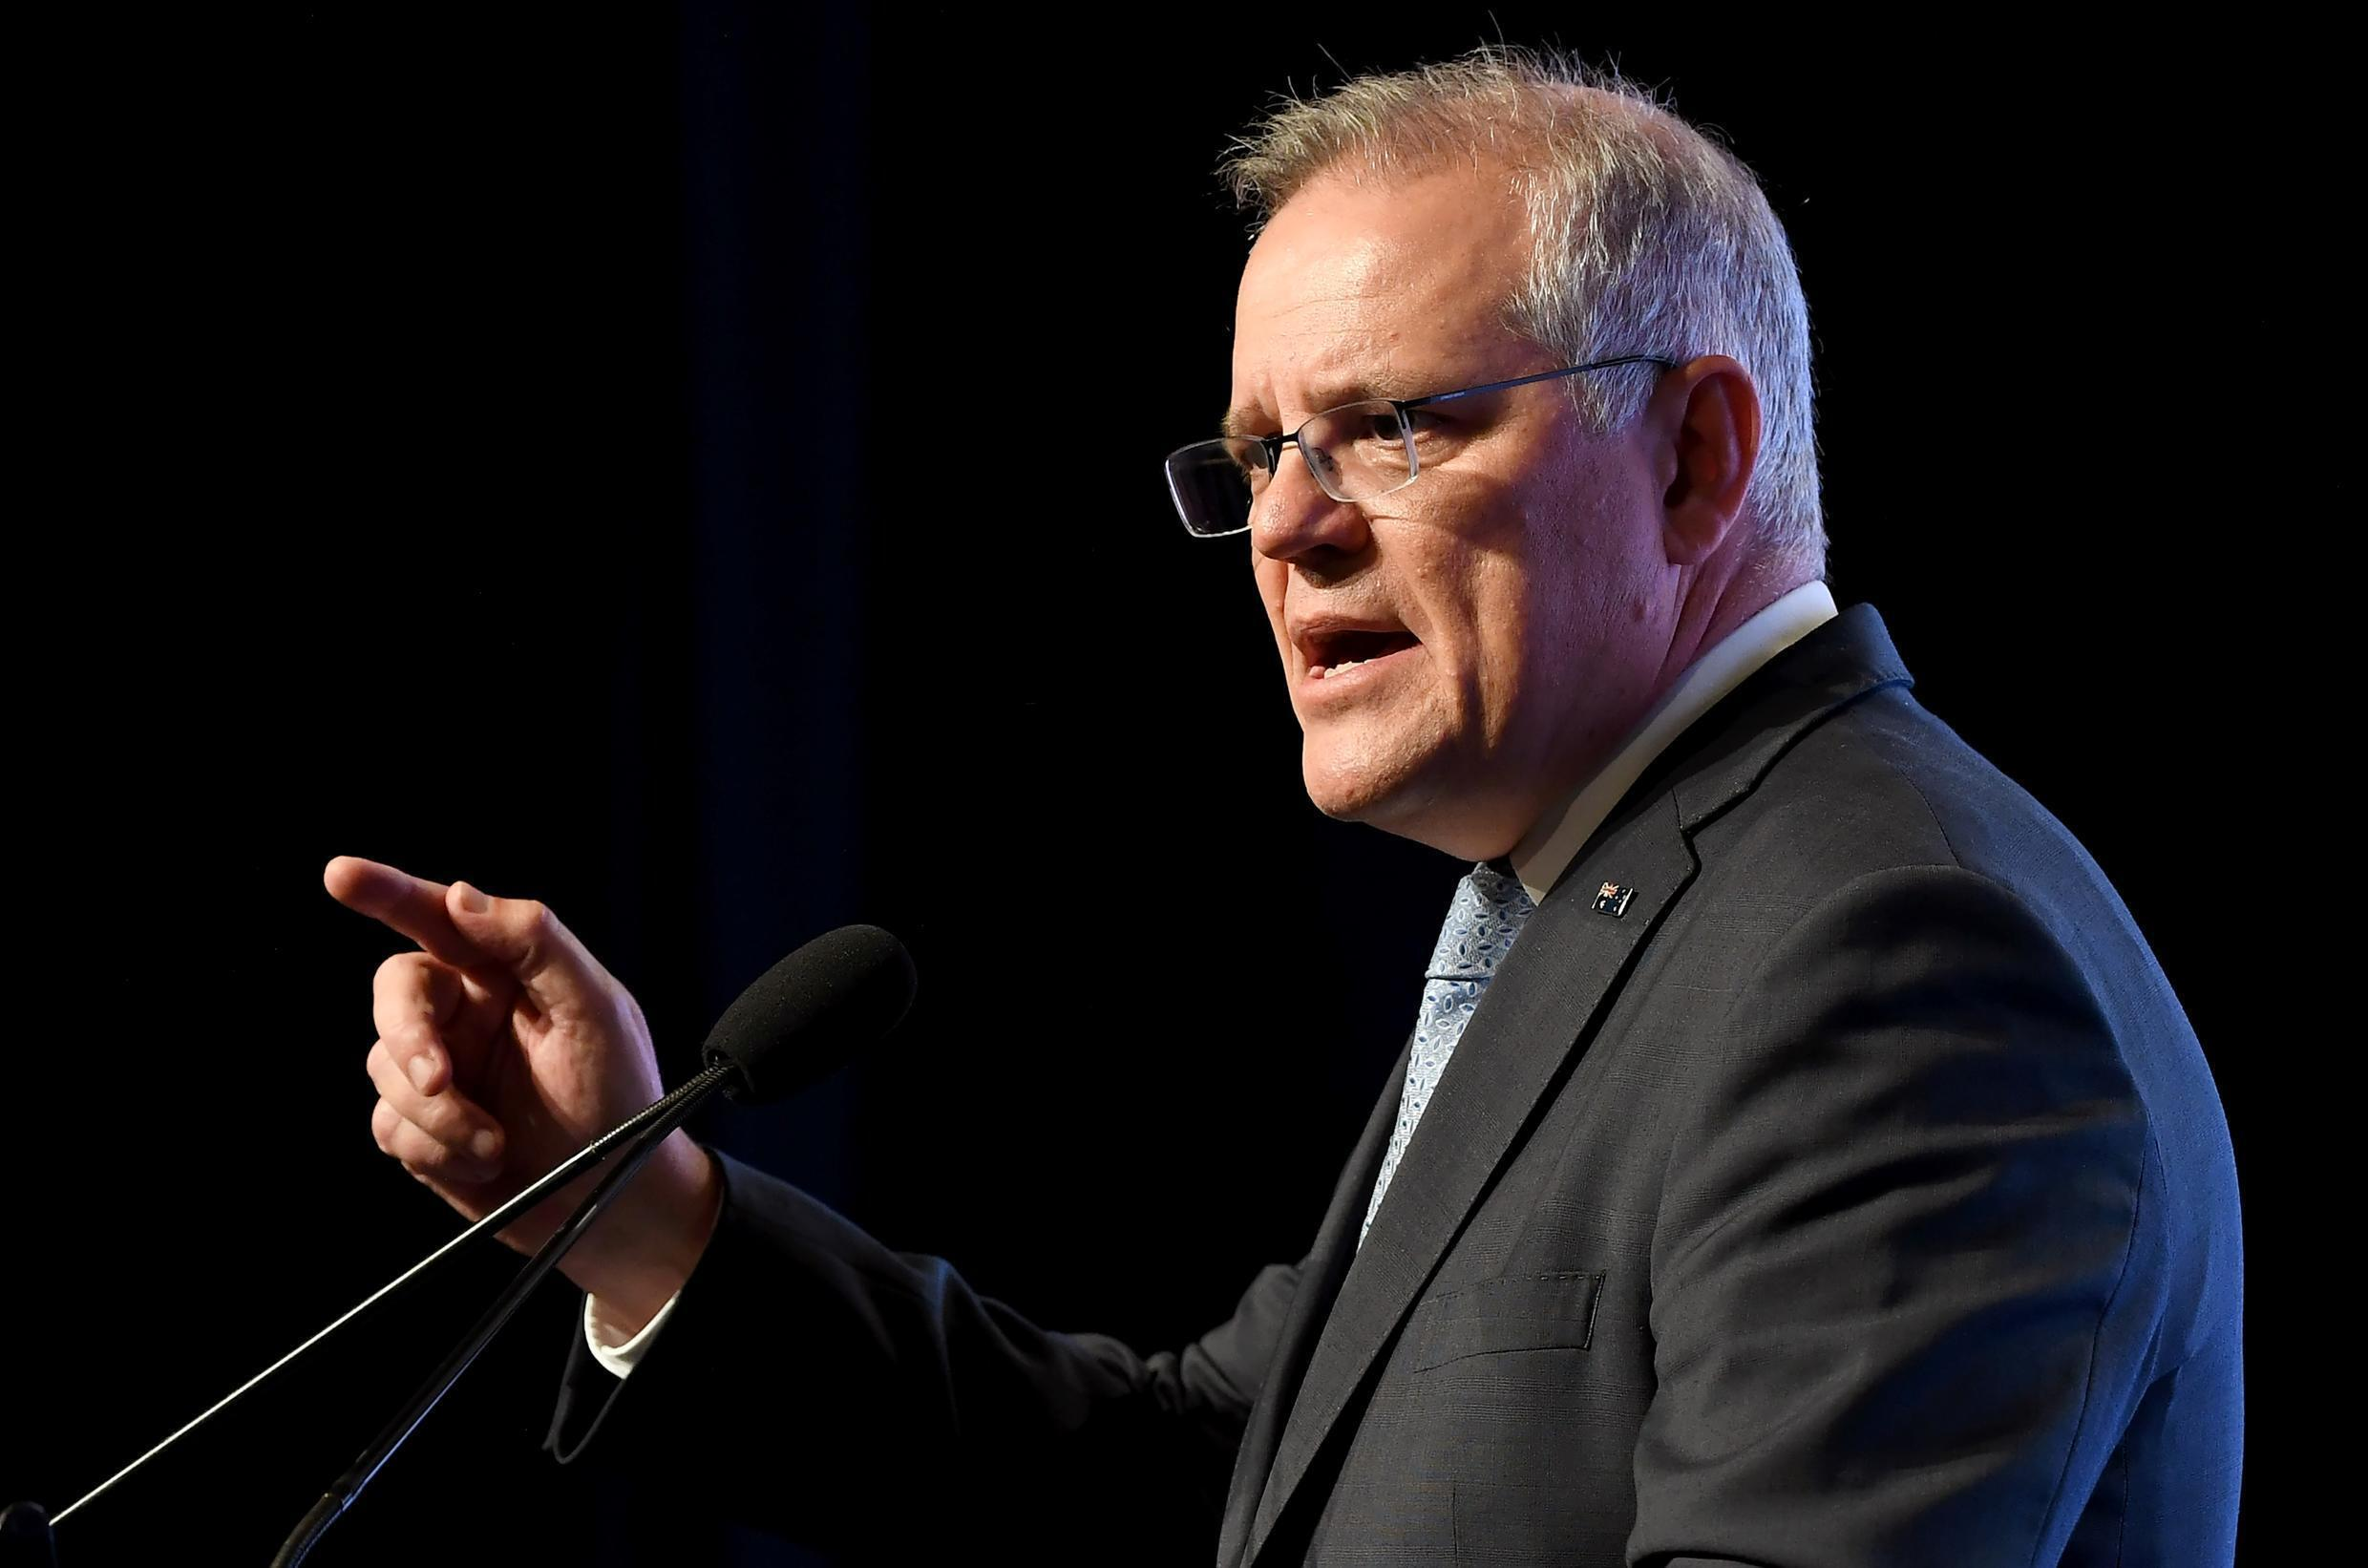 Australia's Prime Minister Scott Morrison plans to meet G7 leaders at their summit in England to discuss trade and other issues